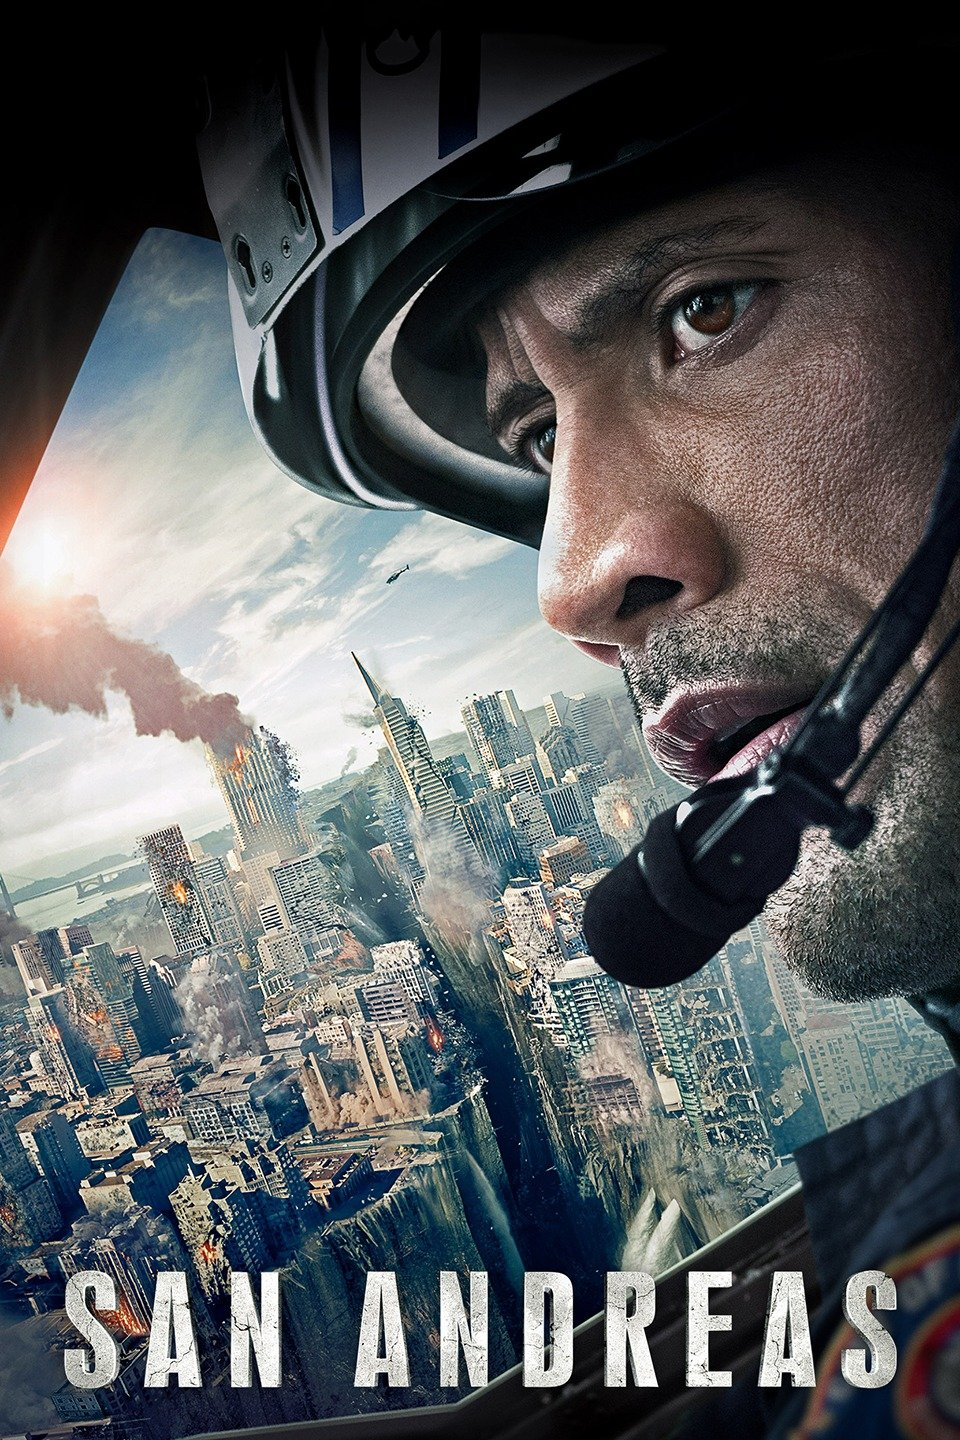 — SAN ANDREAS   A seemingly ideal day turns disastrous when California's notorious San Andreas fault triggers a devastating, magnitude 9 earthquake, the largest in recorded history. As the Earth cracks open and buildings start to crumble, Ray Gaines (Dwayne Johnson), an LAFD search-and-rescue helicopter pilot, must navigate the destruction from Los Angeles to San Francisco to bring his estranged wife (Carla Gugino) and their only daughter (Alexandra Daddario) to safety.